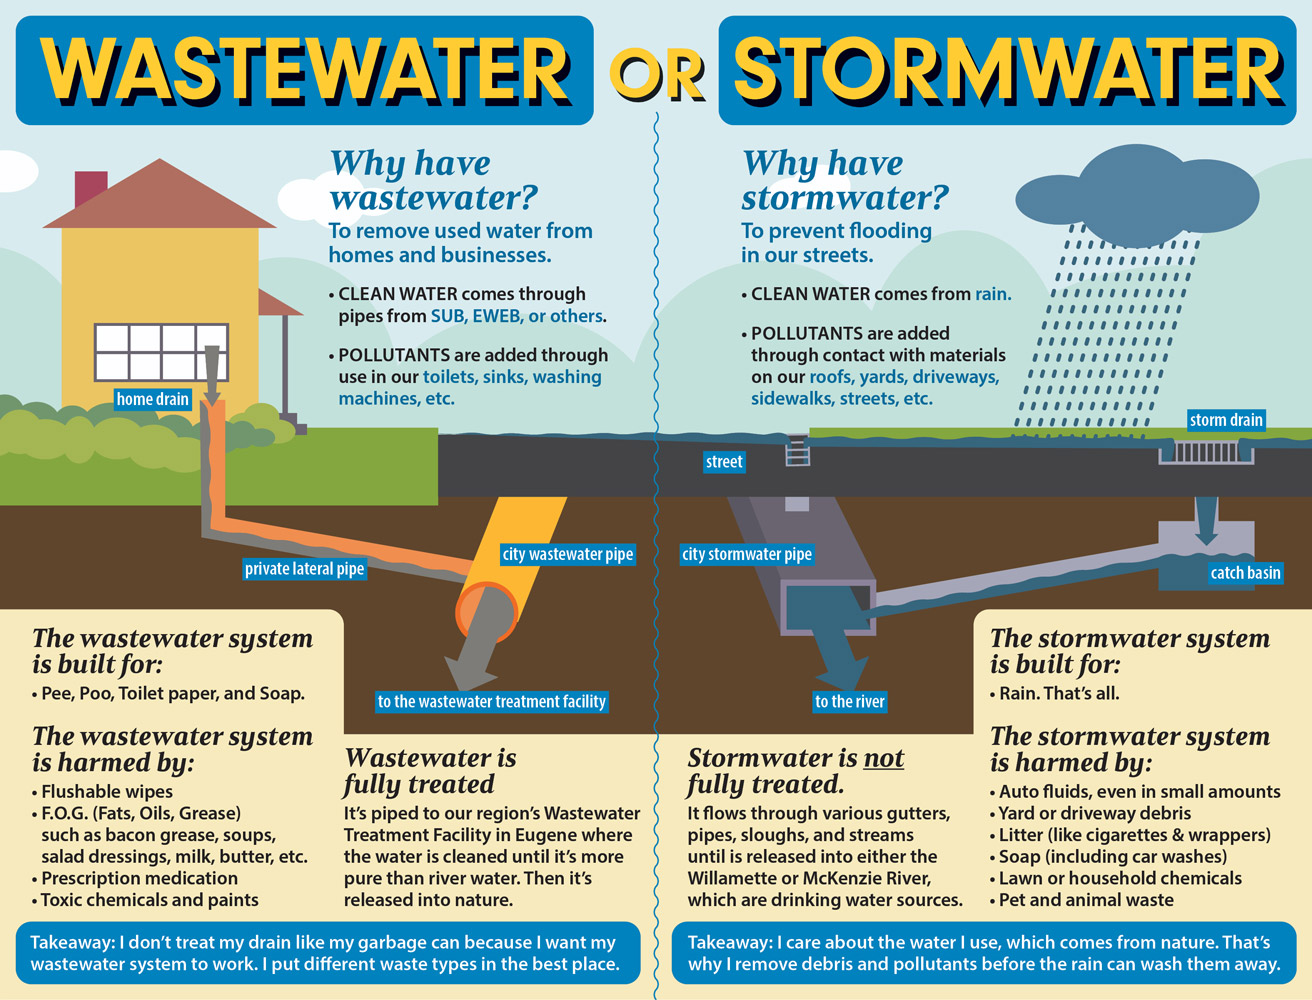 Illustration of the wastewater system compared to the stormwater system.